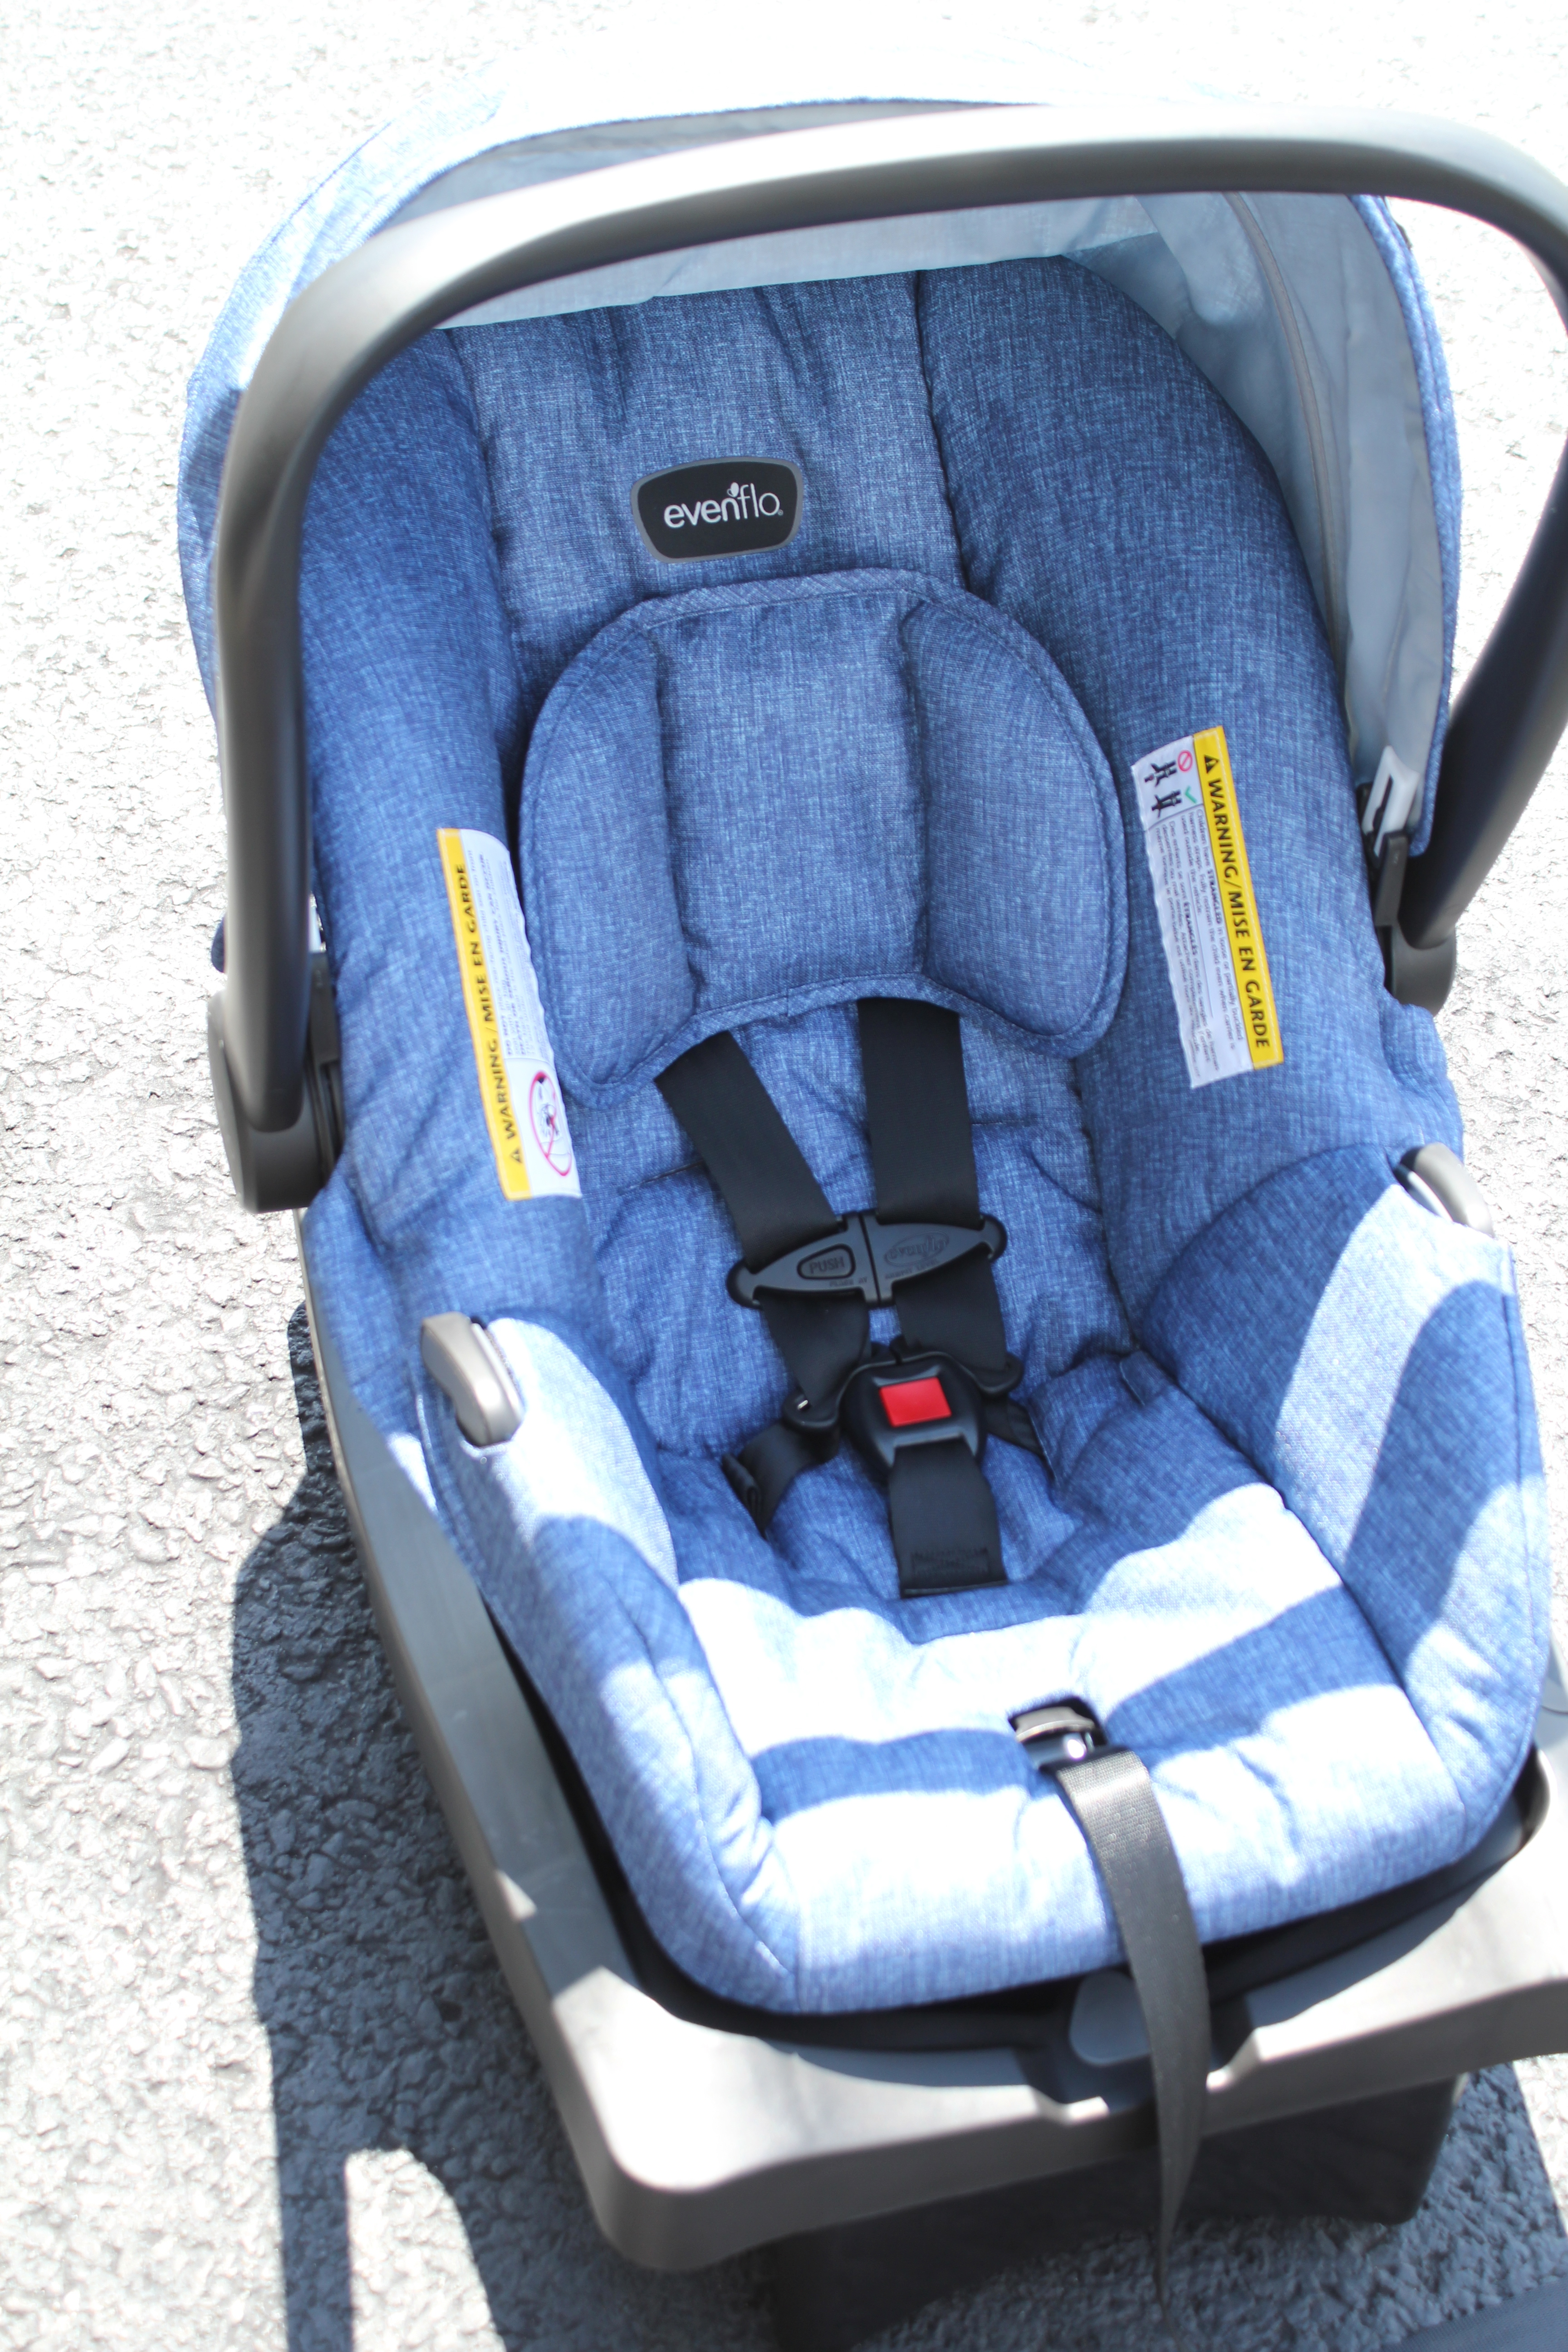 Evenflo Sibby Travel System Review #Sibby #IC #Ad - Girl Gone Mom